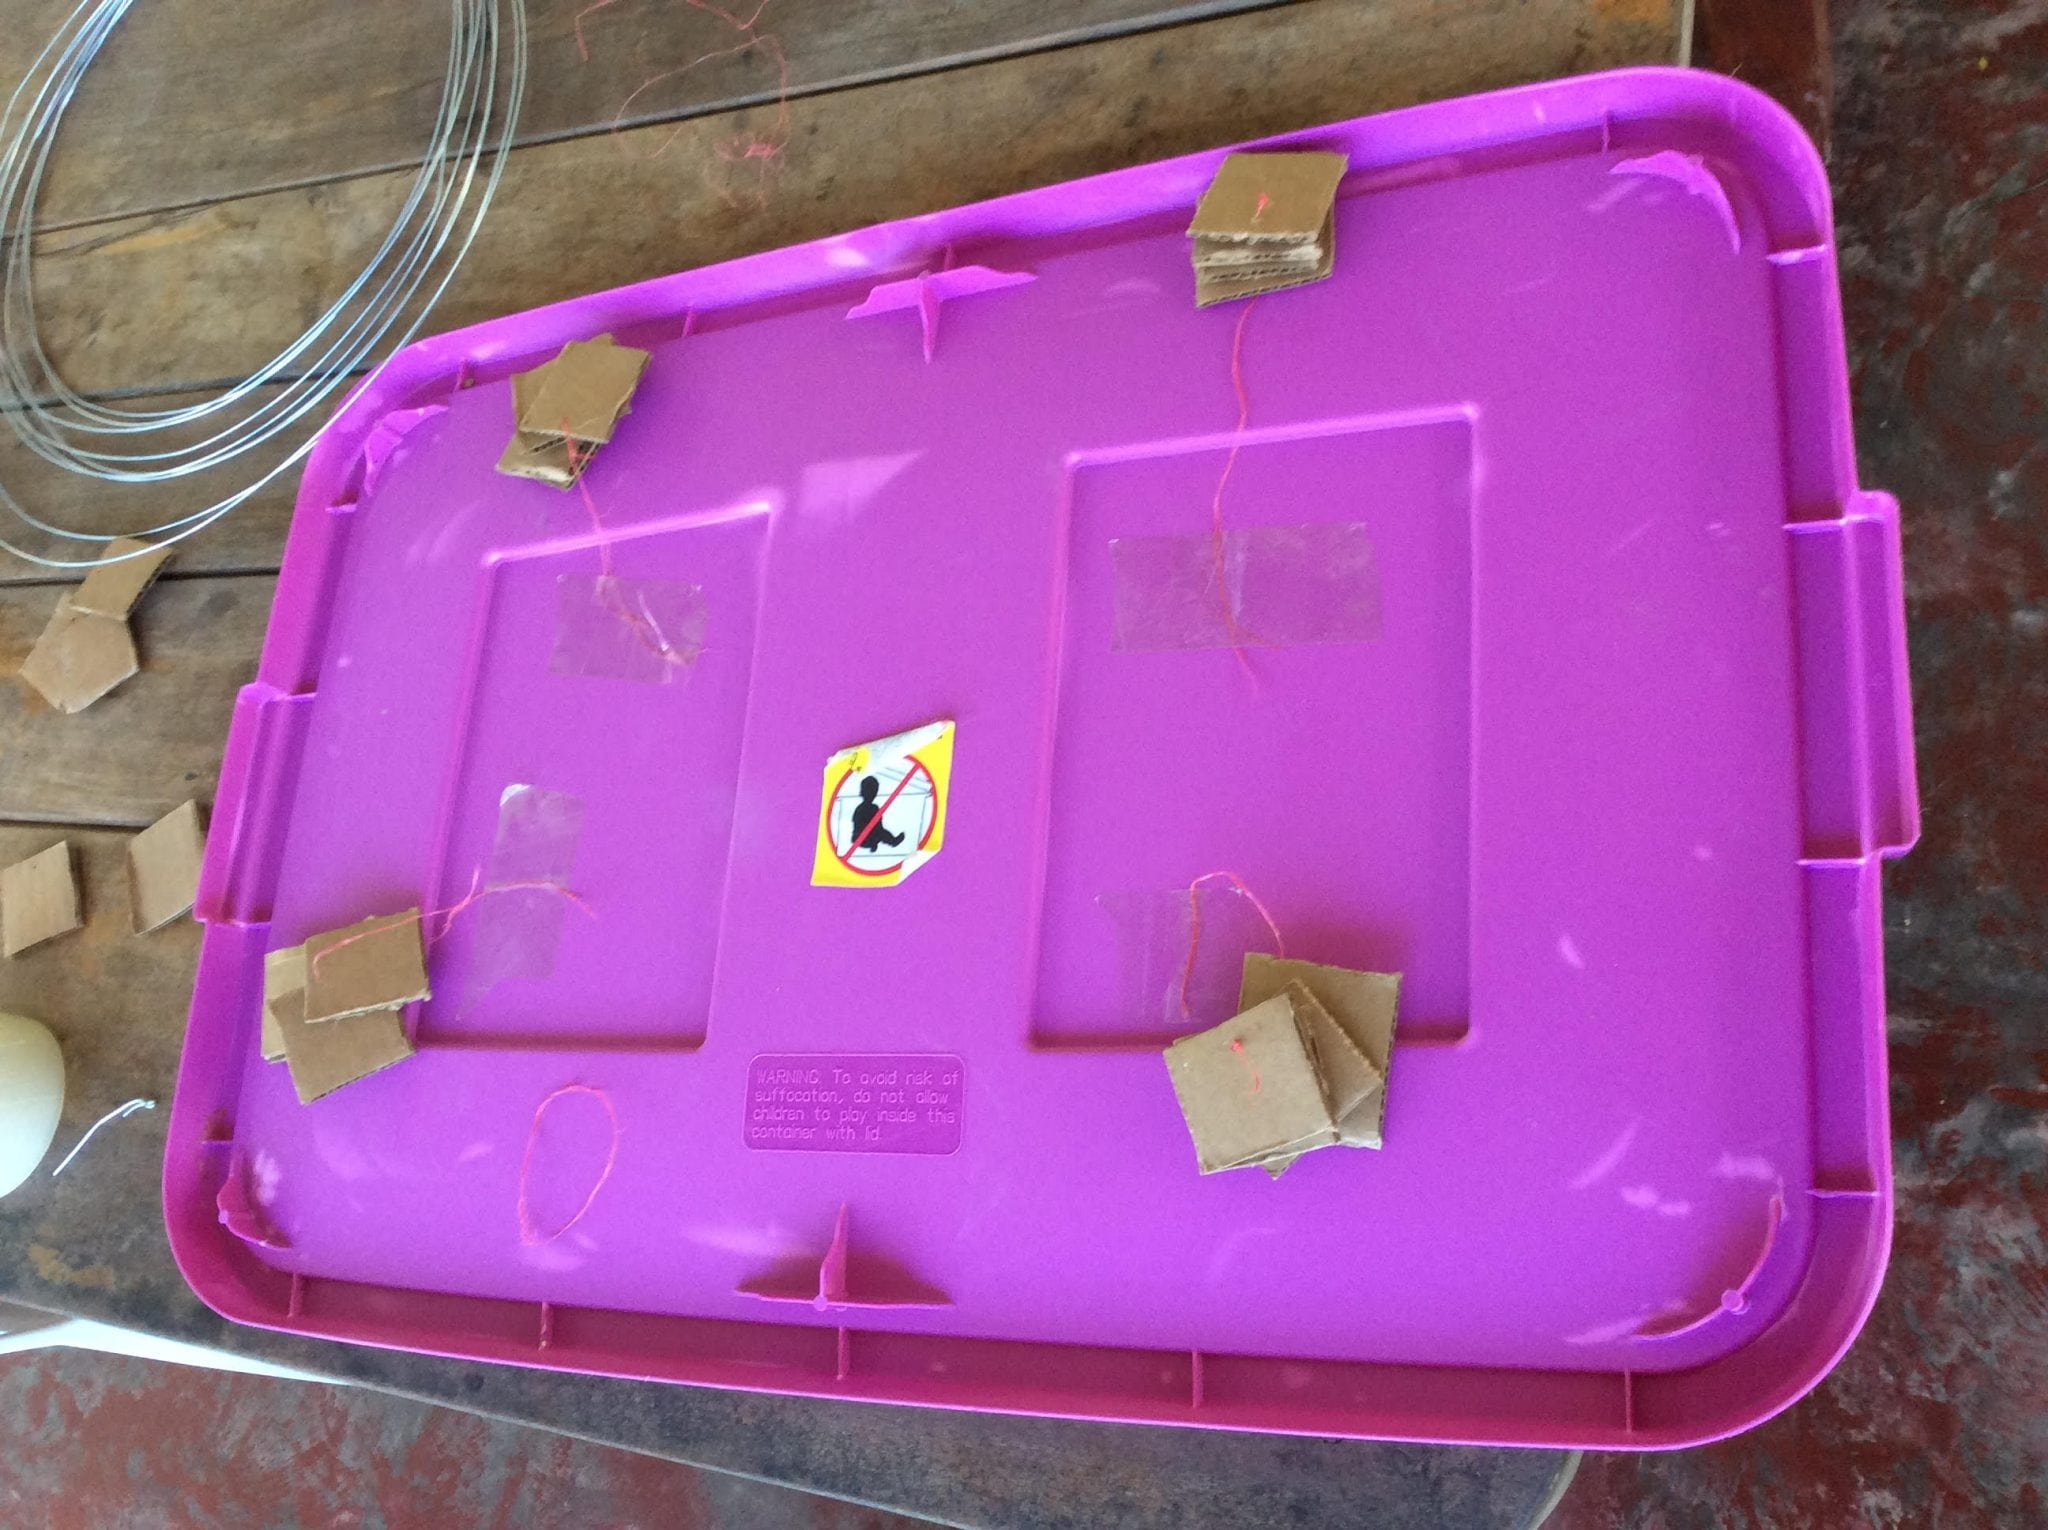 cardboard for the egg production